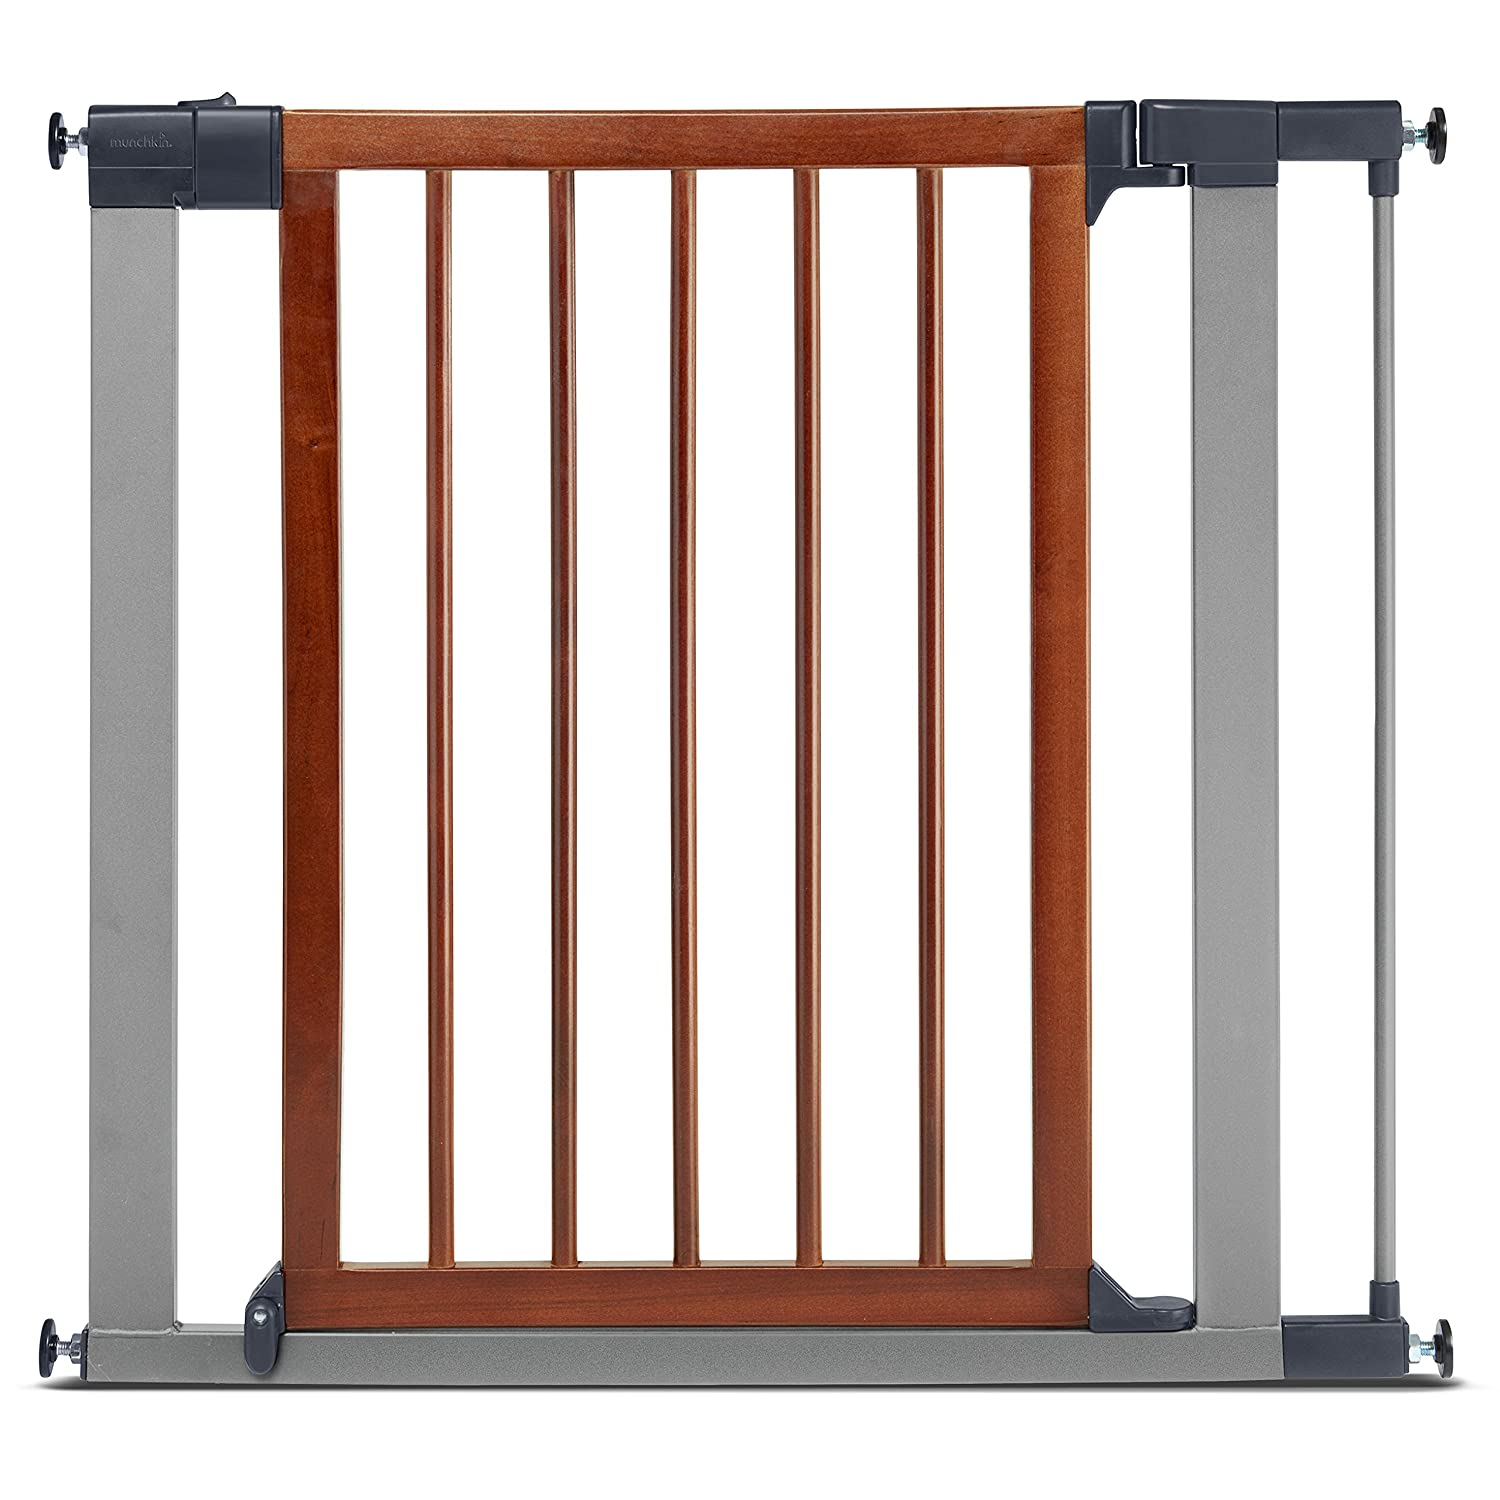 Amazon Com Munchkin Wood Steel Pressure Mounted Baby Gate For Stairs Hallways And Doors Walk Through With Door Wood Light Silver Metal Baby